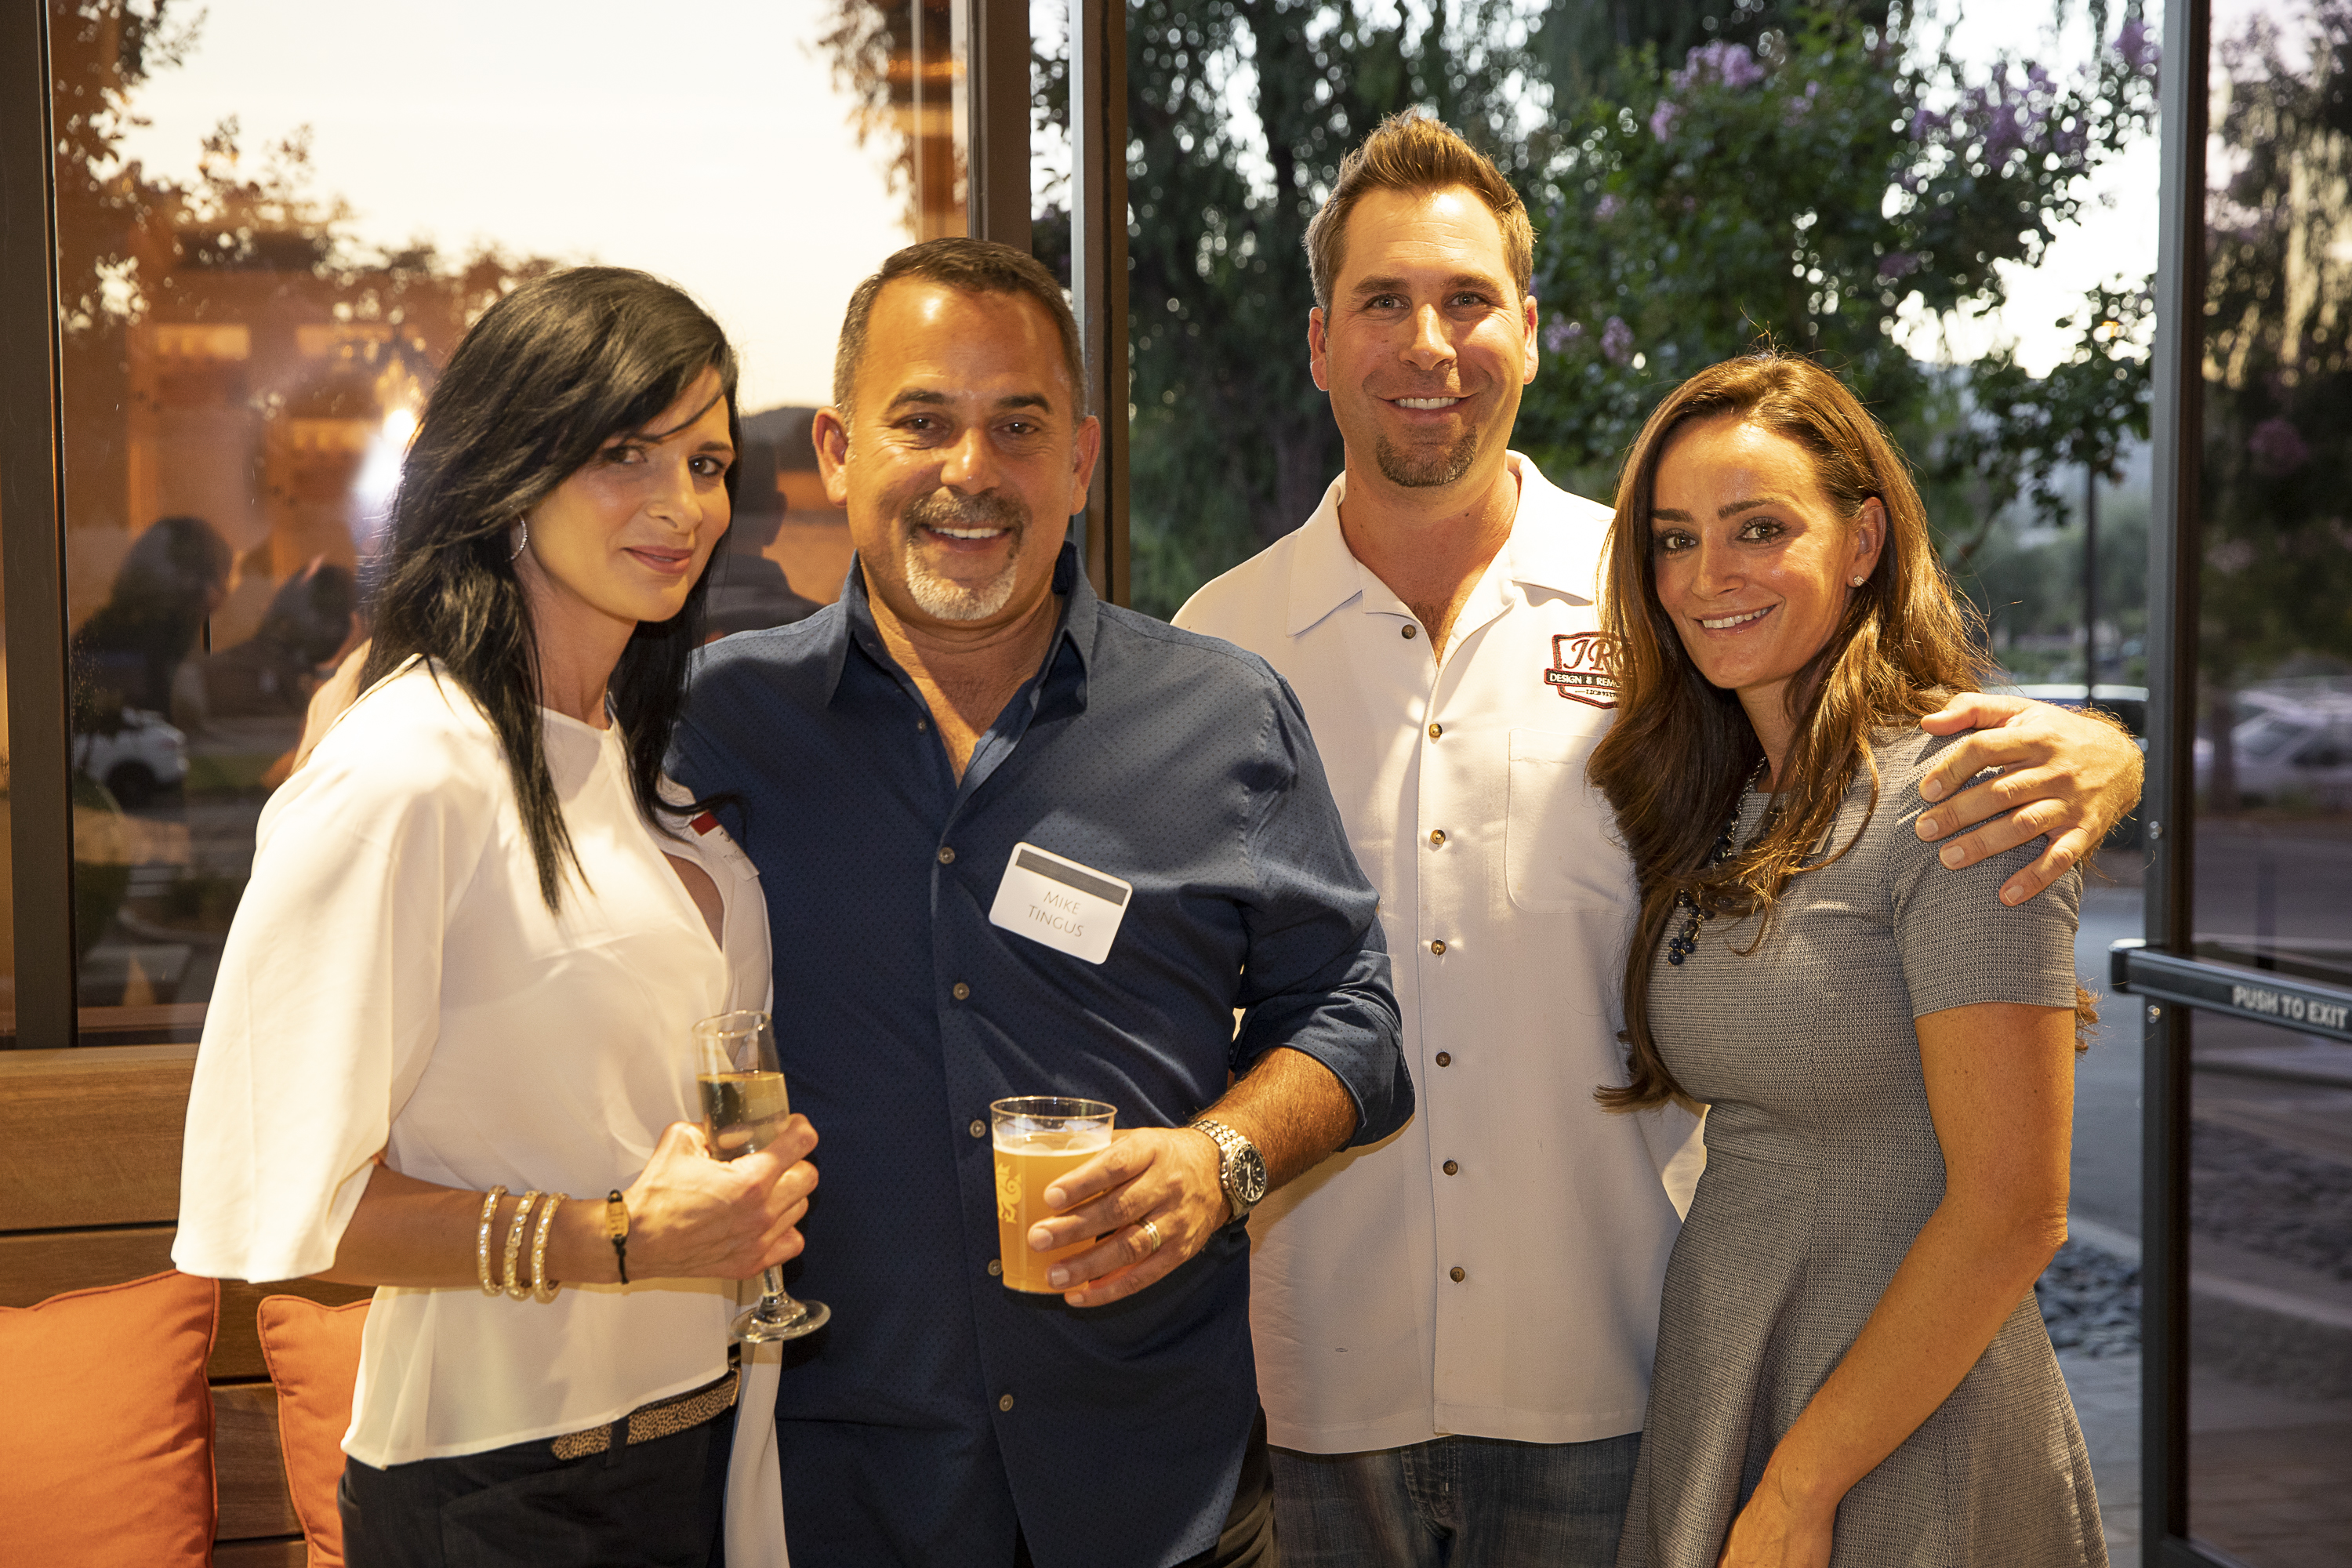 Client Appreciation September 2018 - Justin and Lori with guests